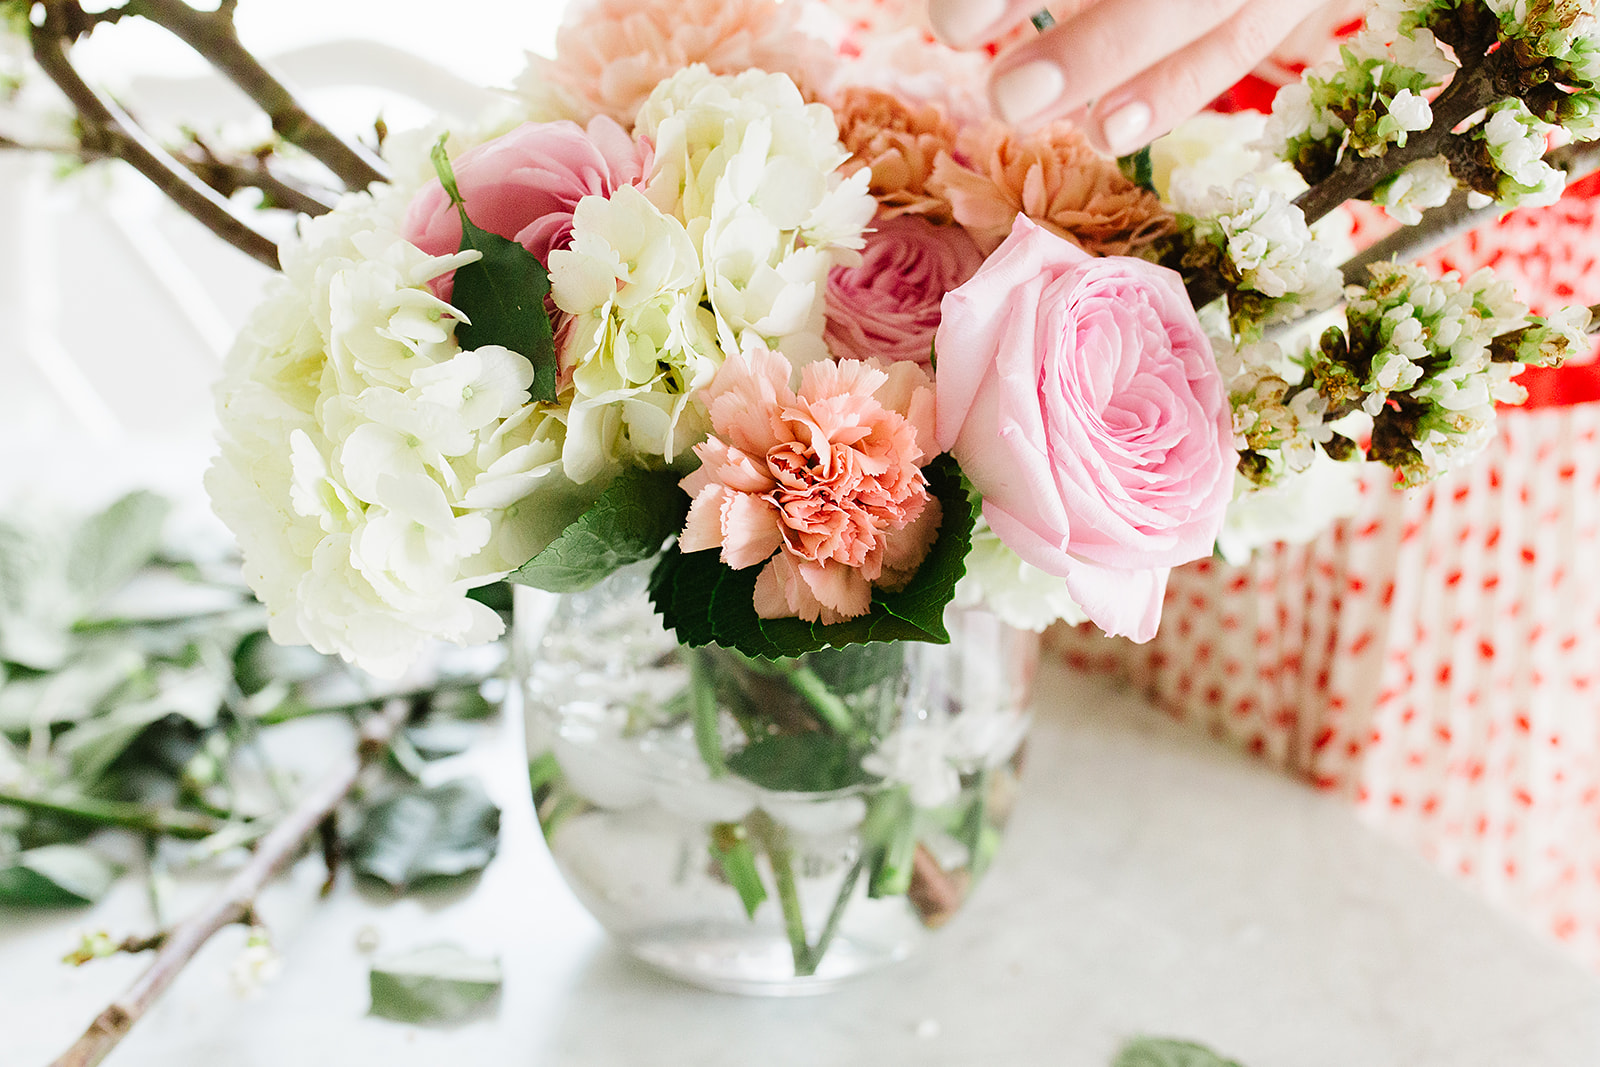 Florals used in this photo: cherry blossoms, hydrangea, carnations, garden roses